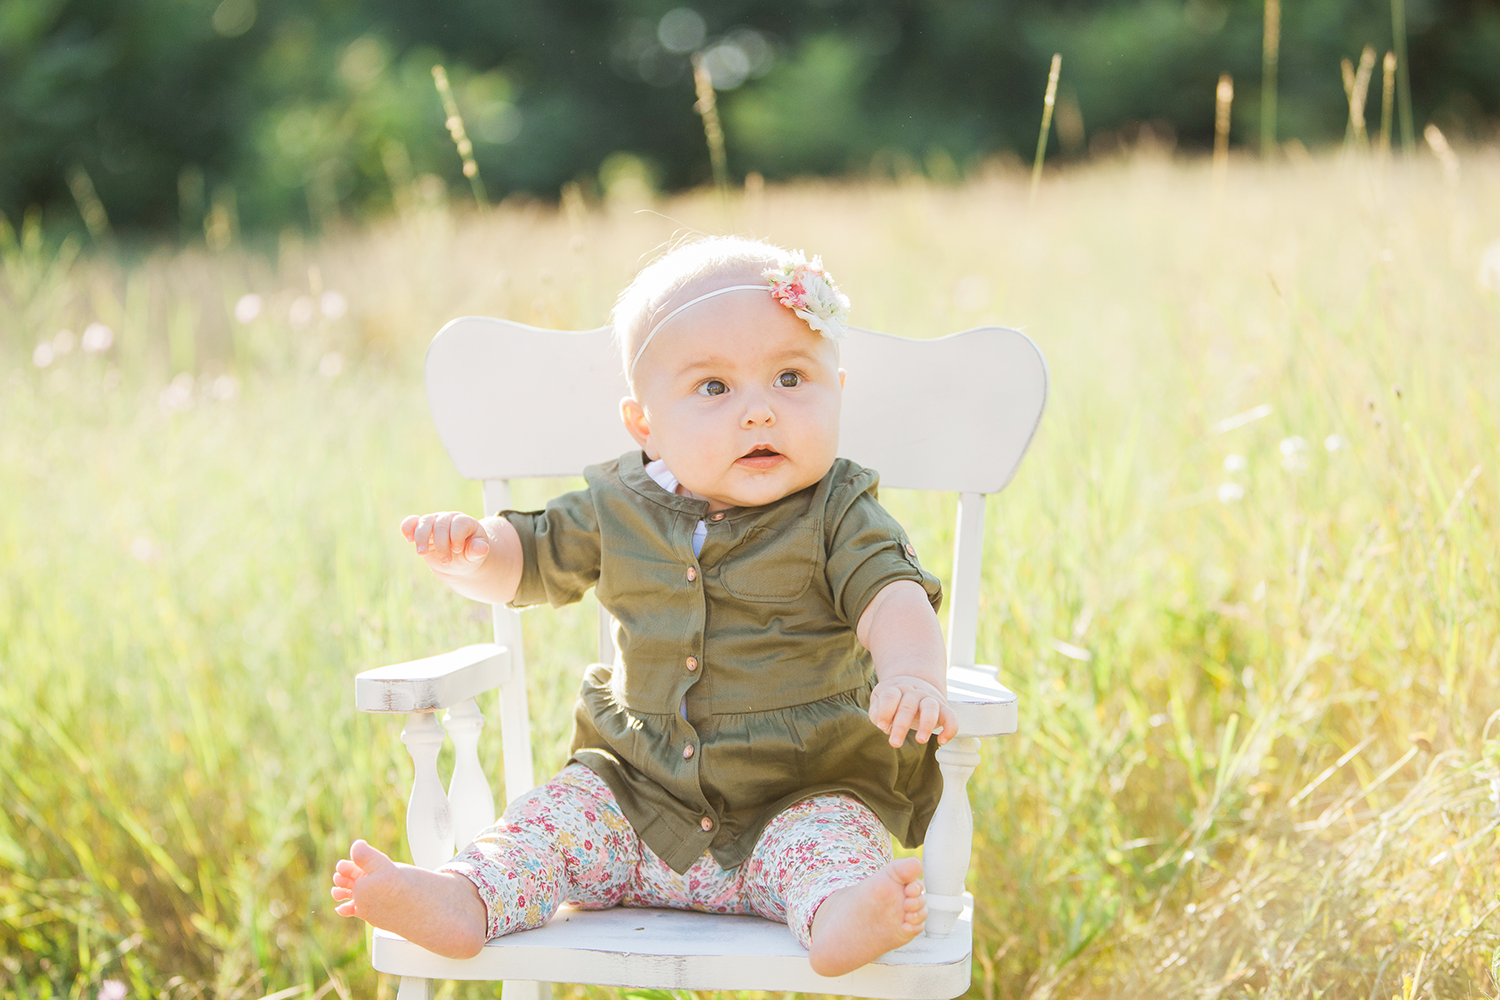 kate frank photography babies 72.png